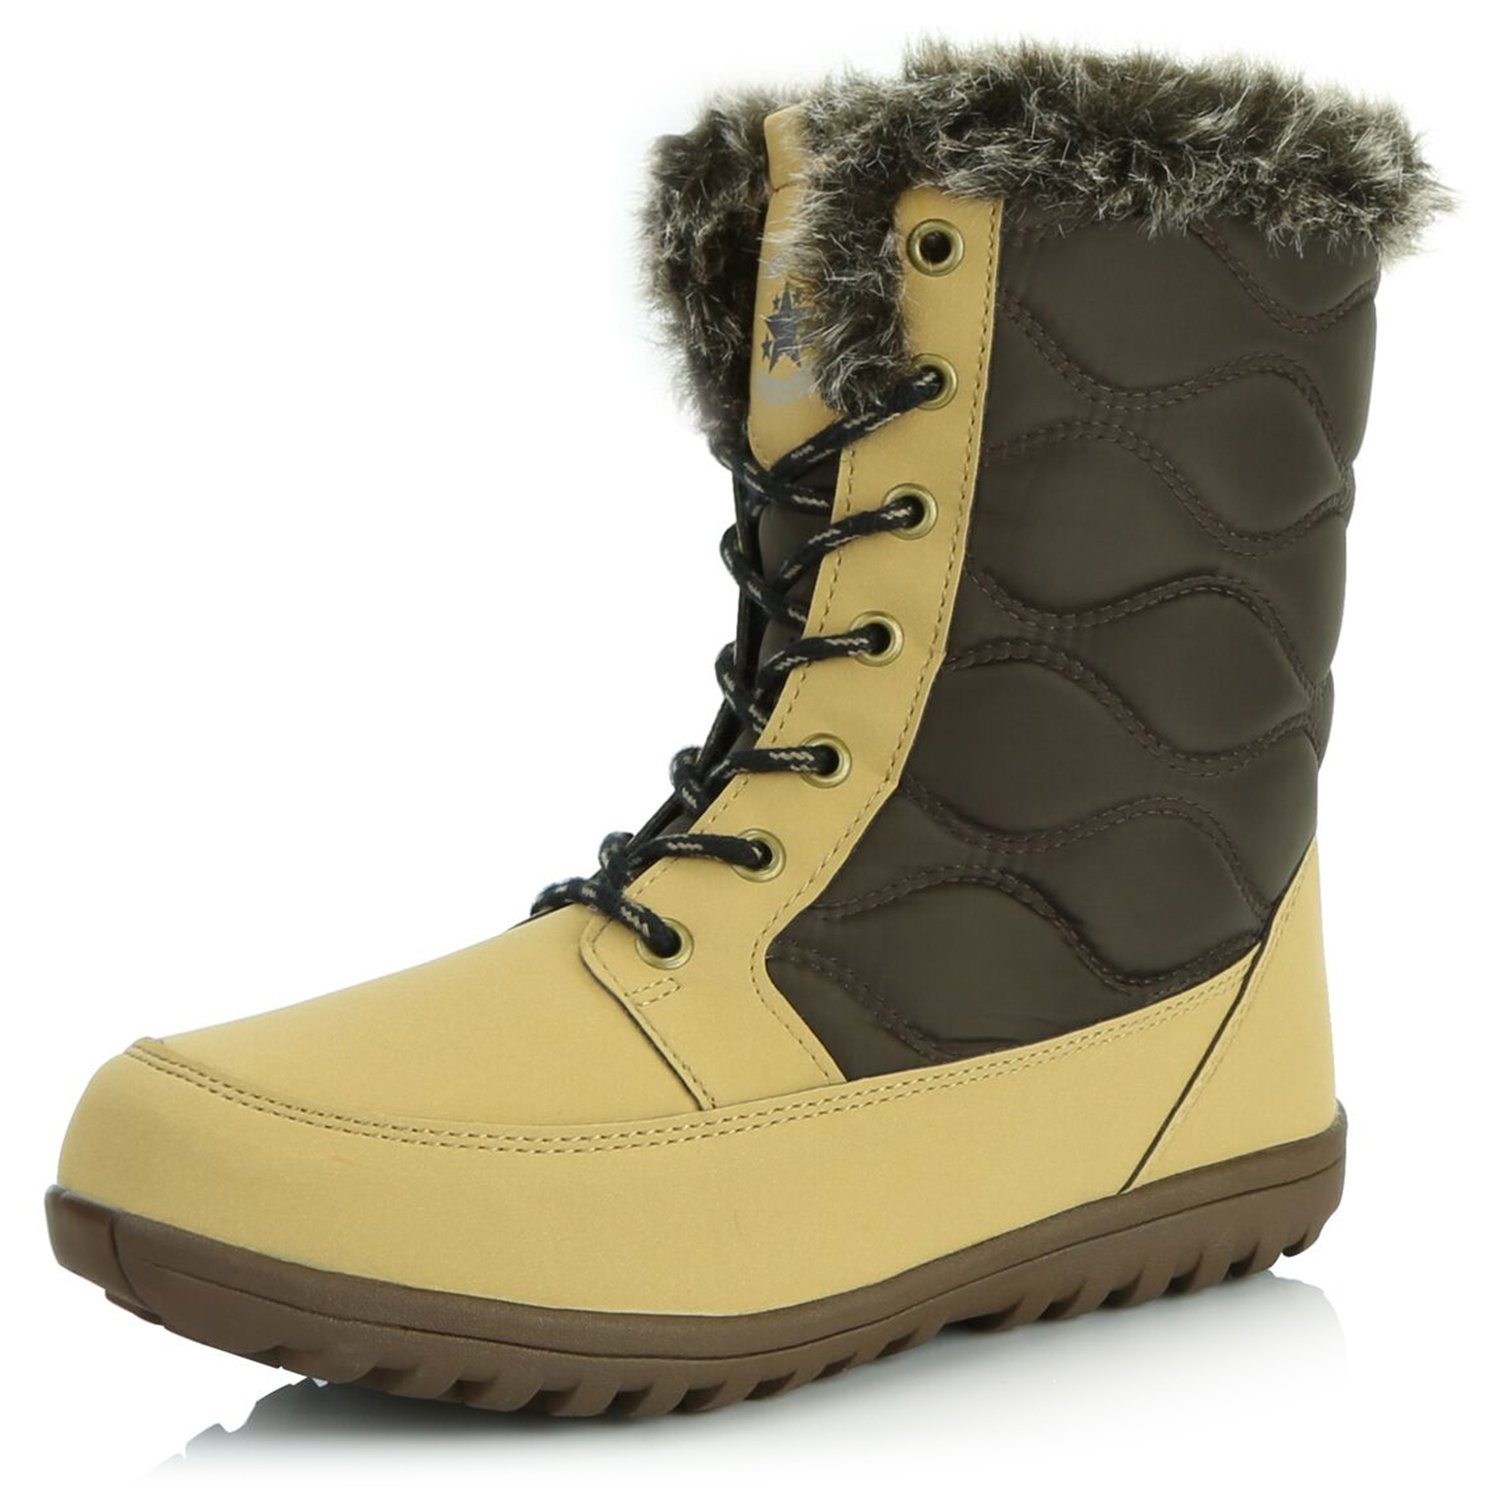 DailyShoes Warm Ankle Winter Boots for Women Snow Bootie Short Quilt Lace Up Hiking Shoes Running Backpacking Walking Water Resistant Mid Calf Sexy with Faux Trim Snow-02 Tan Pu 7 by DailyShoes